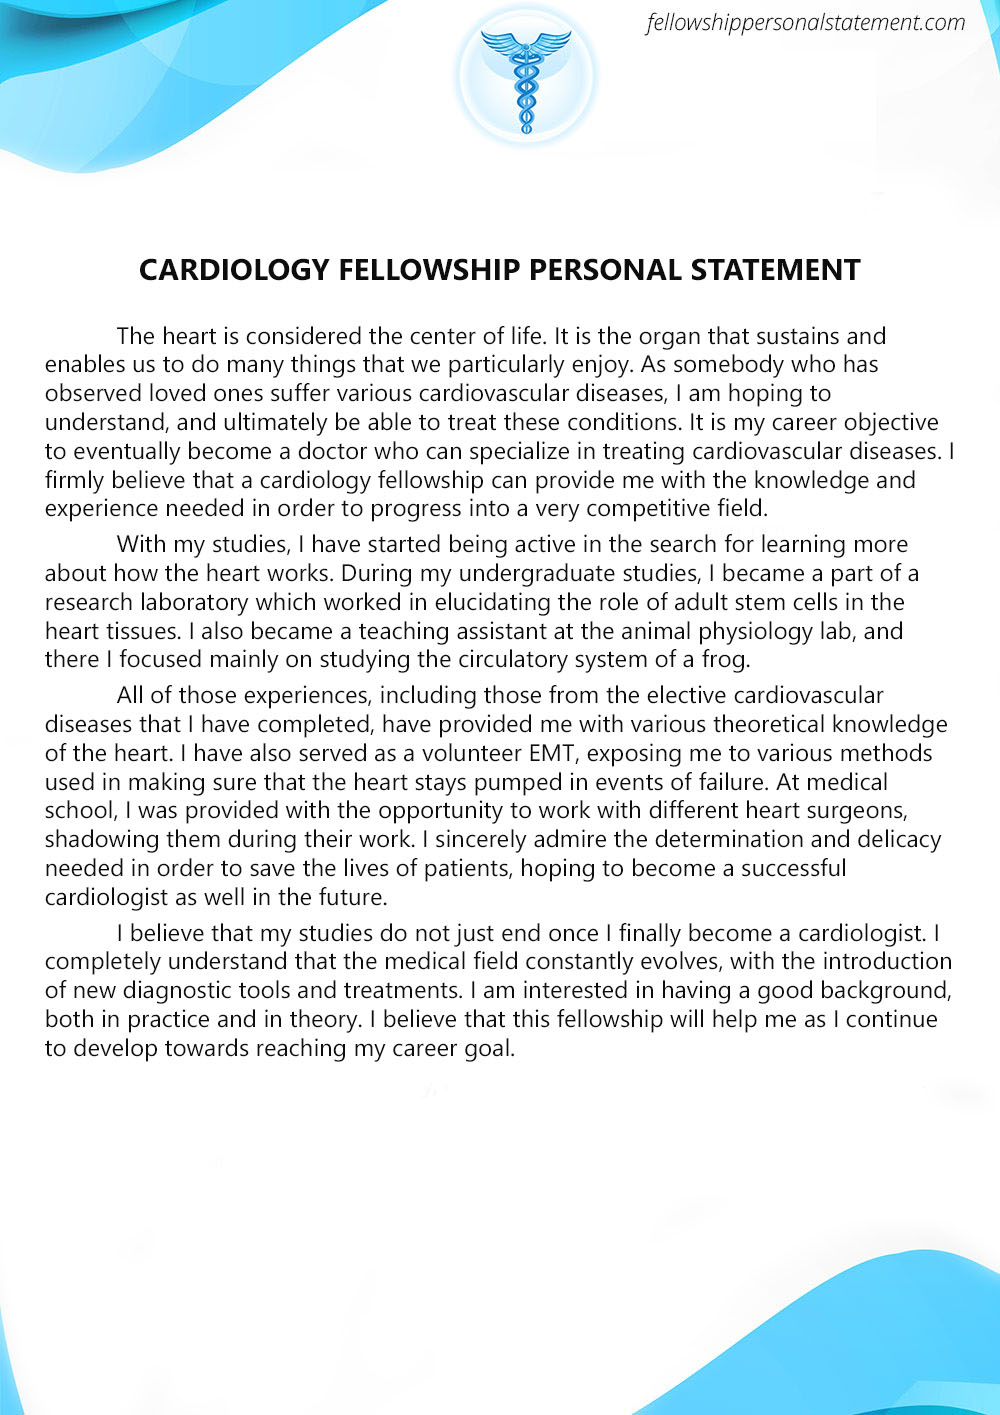 Personal statements cardiology fellowship